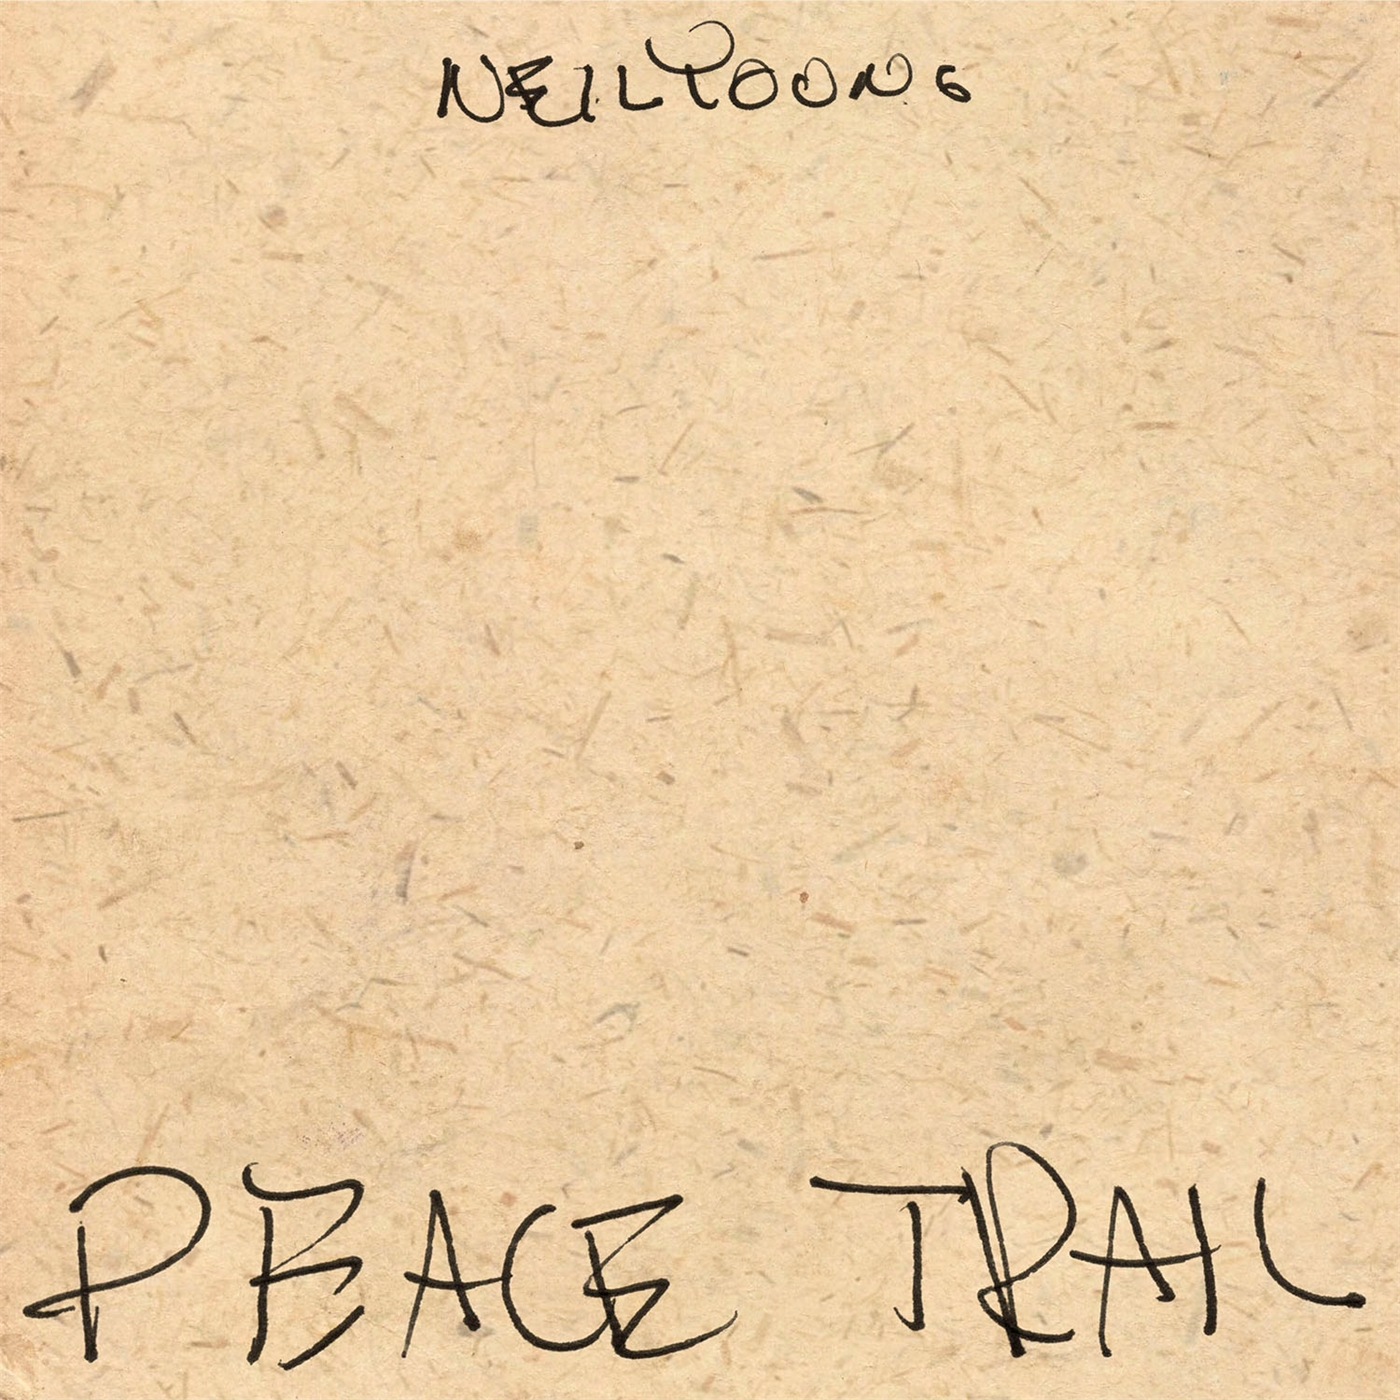 Neil Young – Peace Trail [LP]